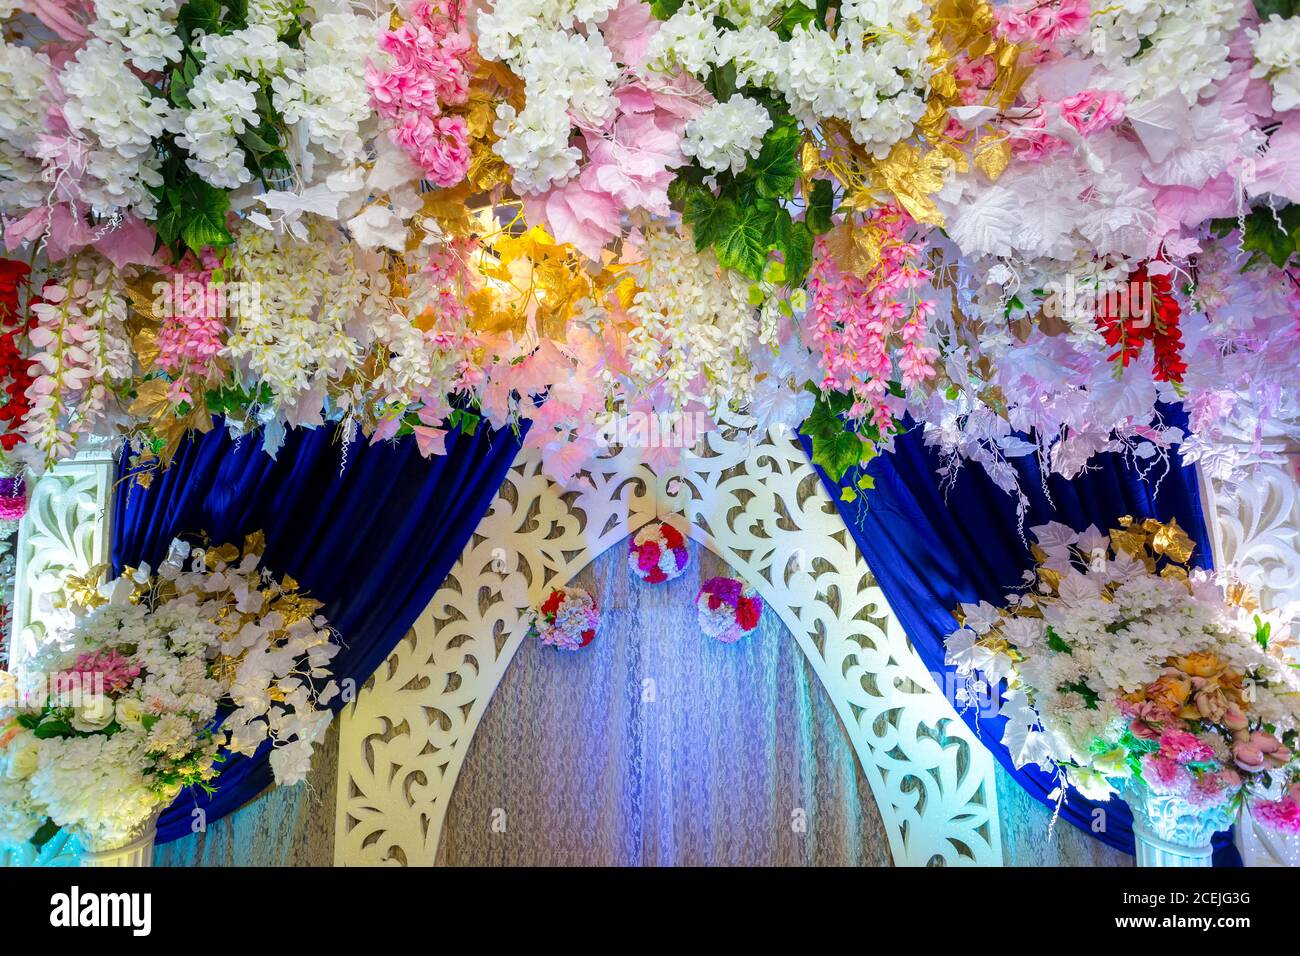 Wedding stage decoration with artificial colorful flower decoration. Stock Photo